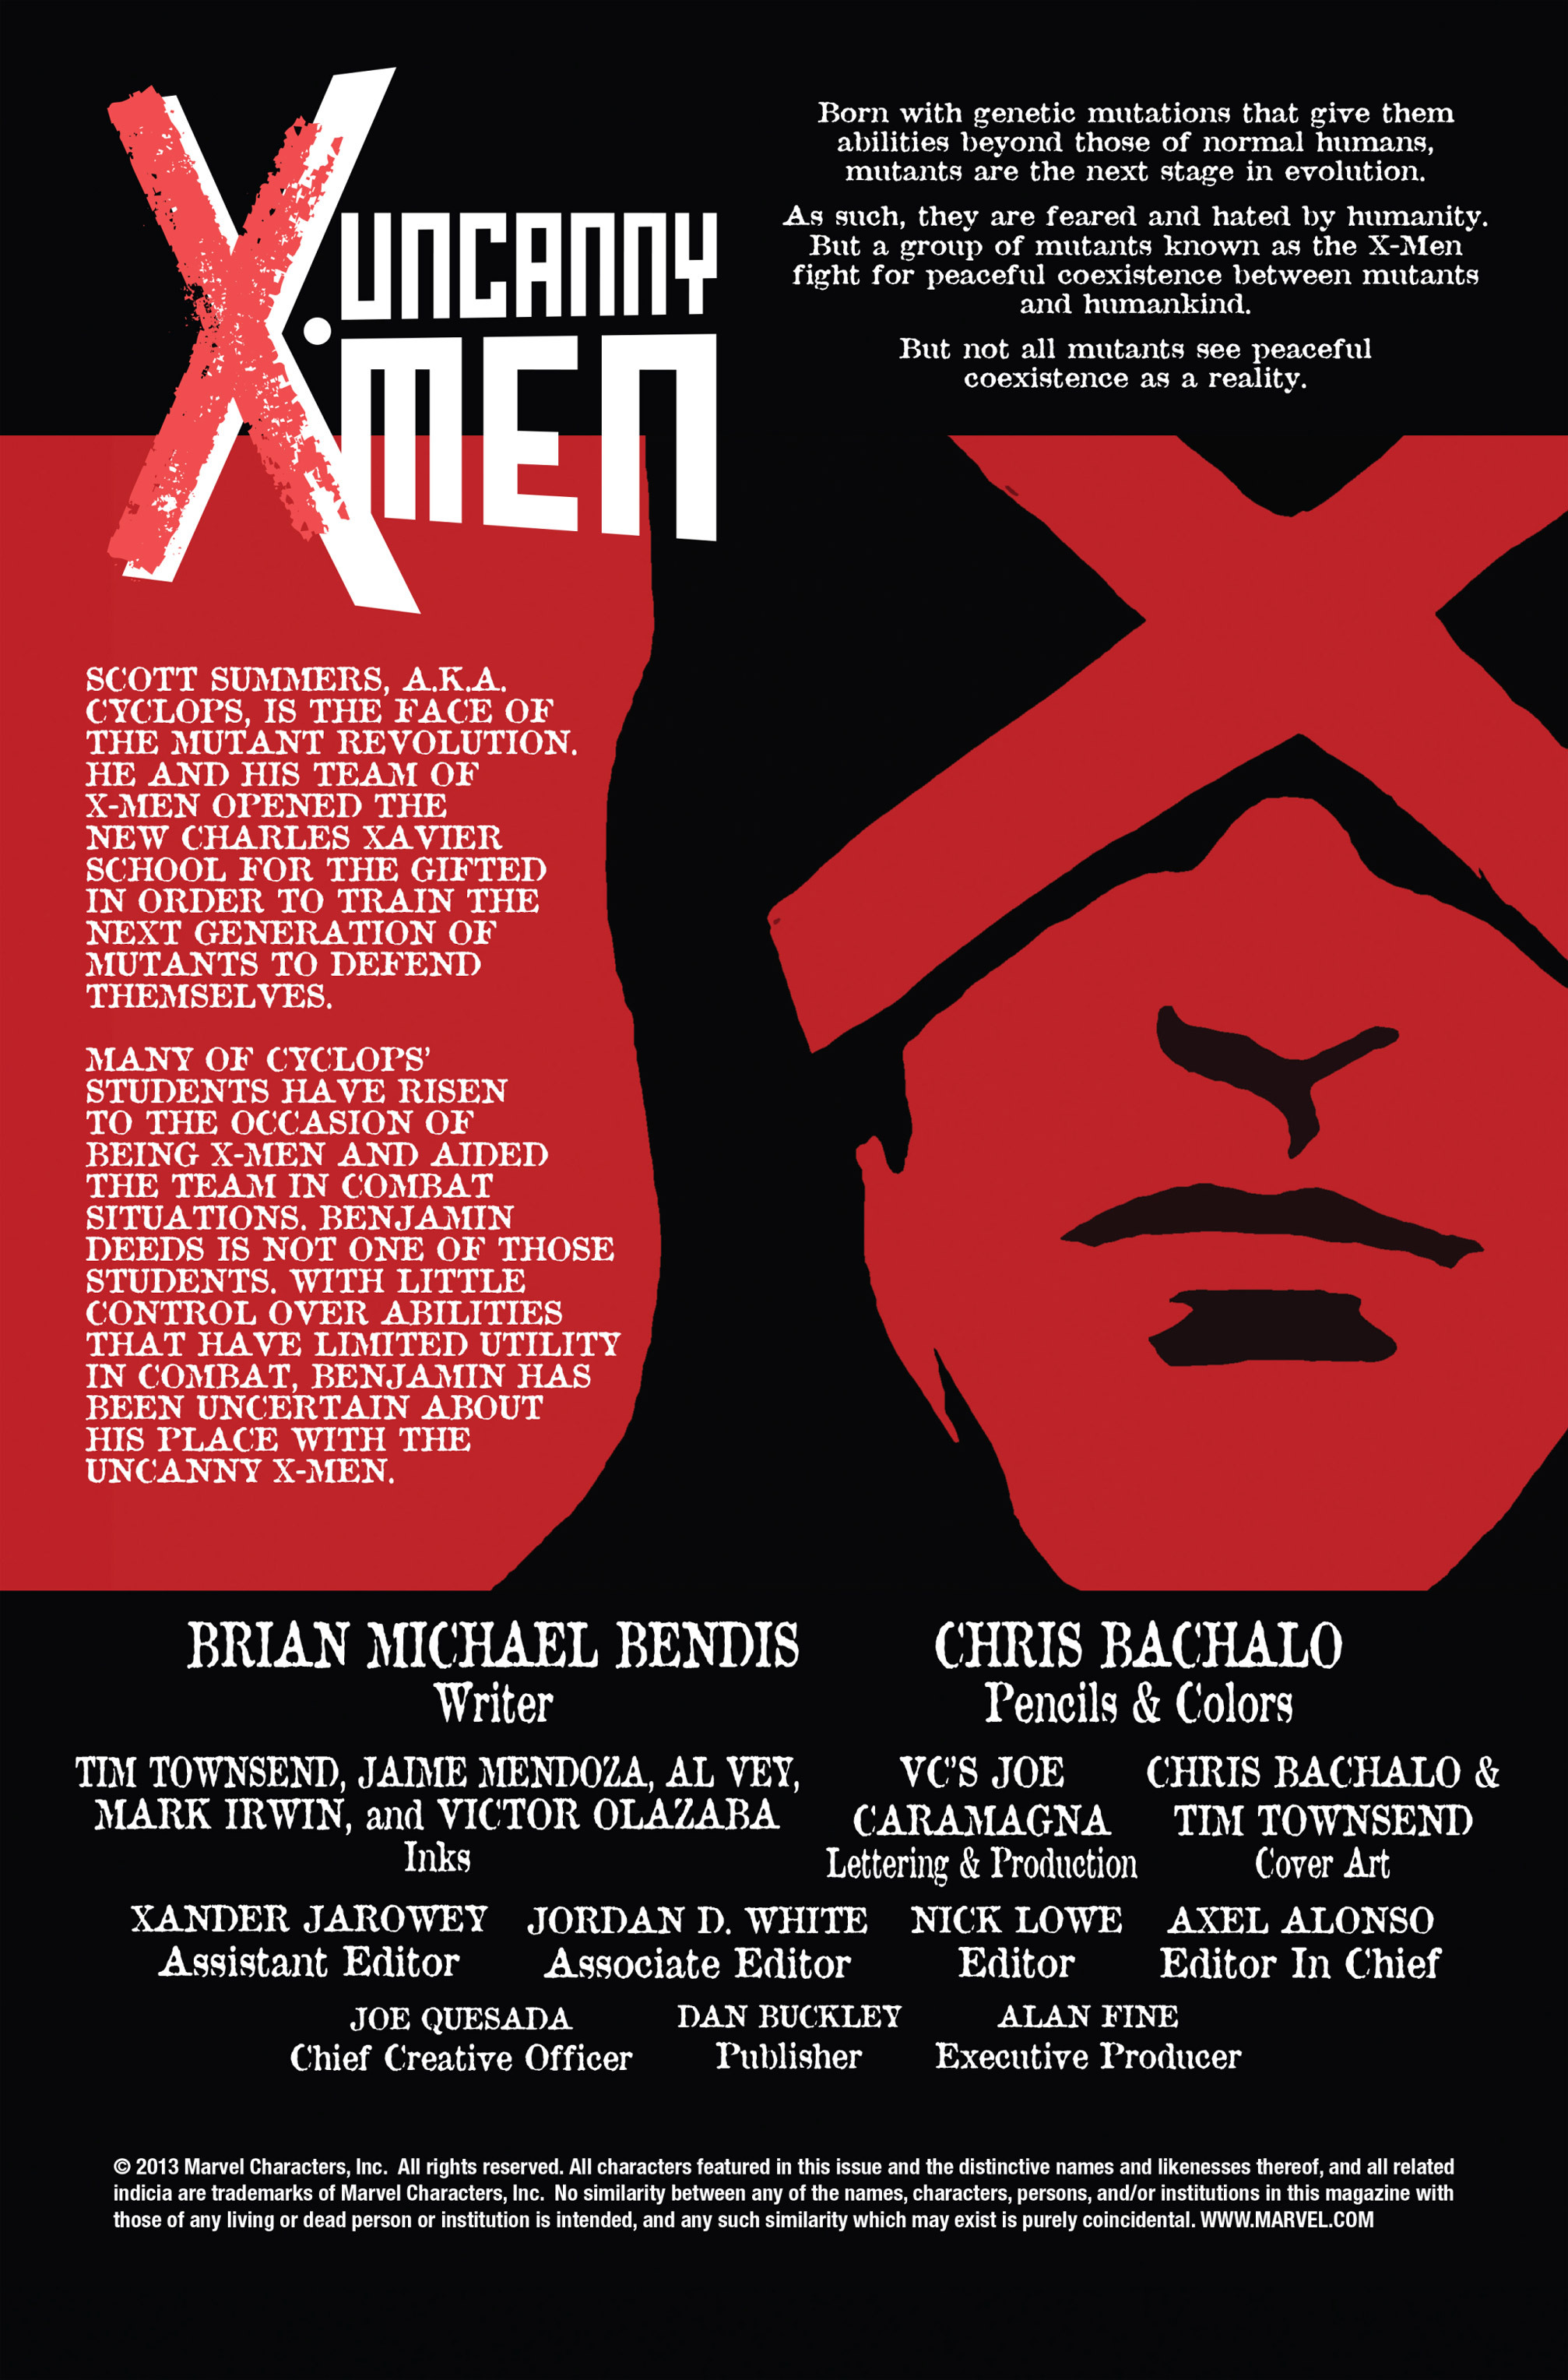 Read online Uncanny X-Men (2013) comic -  Issue # _TPB 3 - The Good, The Bad, The Inhuman - 4